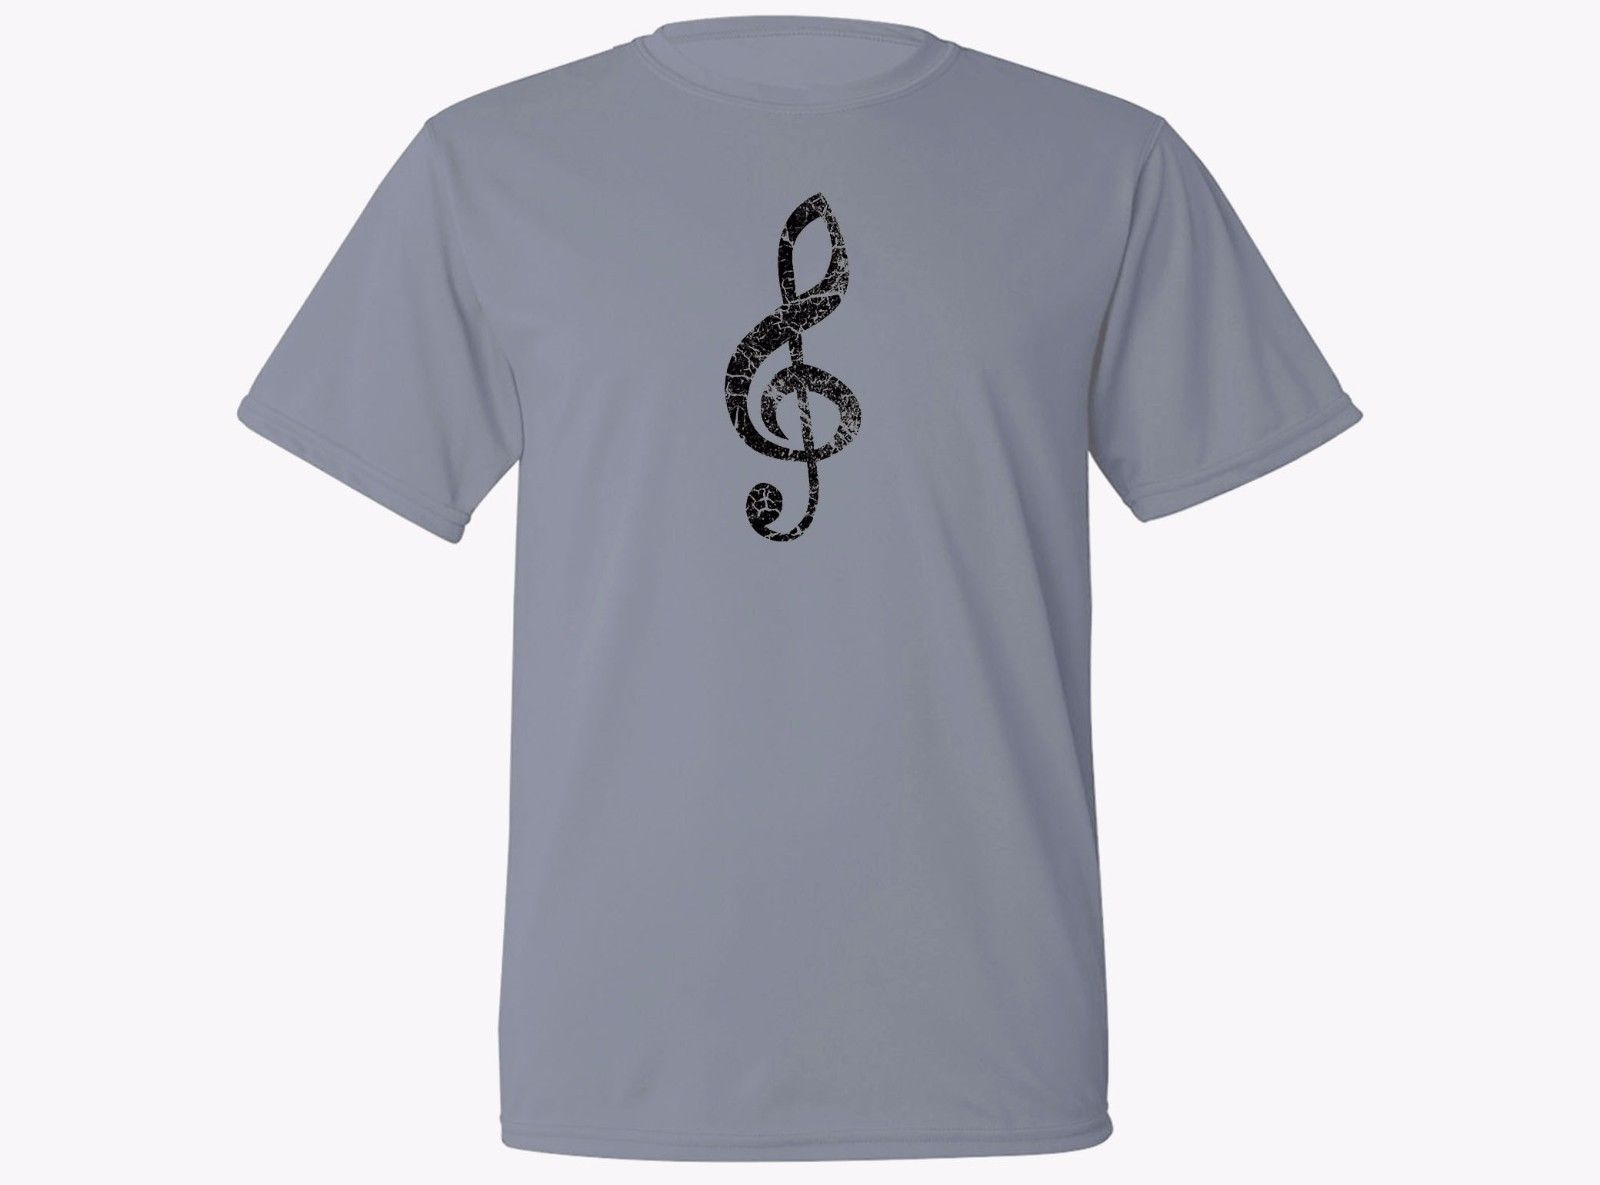 2019 New Fashion Music player gift treble clef moisture wicking fabric workout gray new t-shirt Tee shirt image